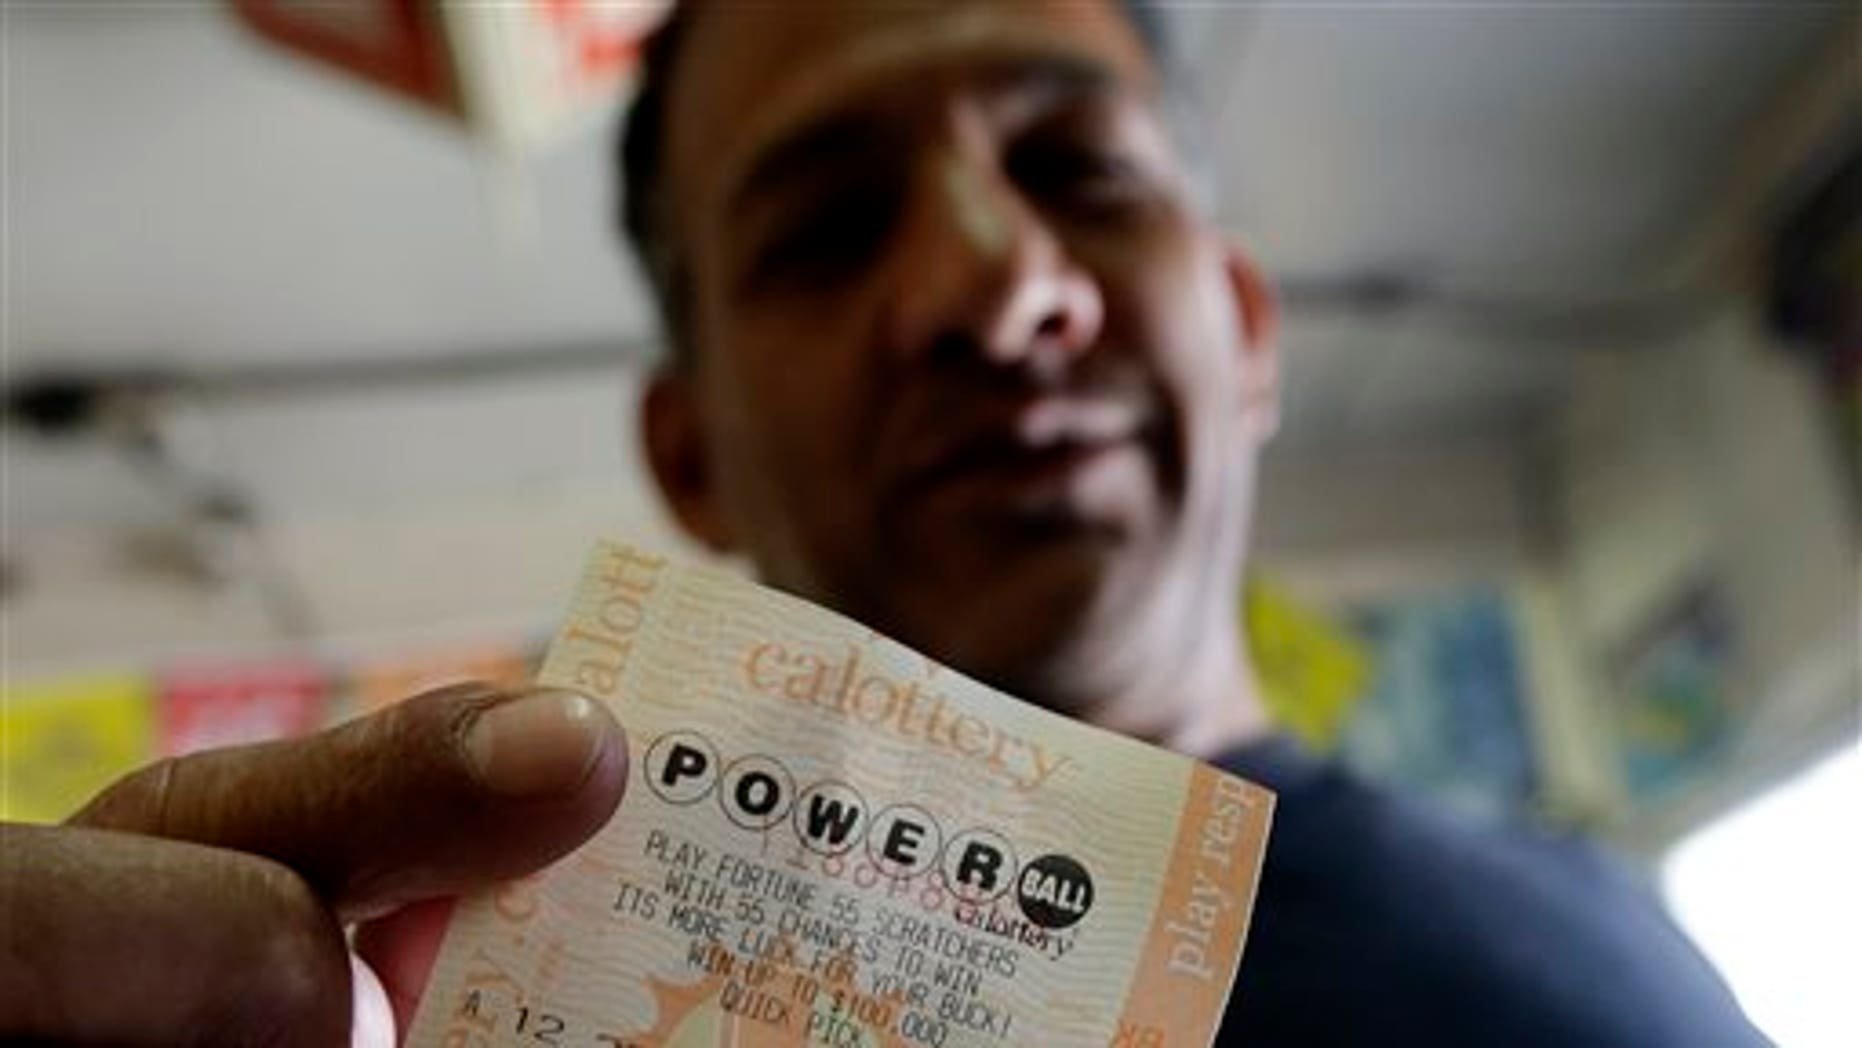 Joe Fajardo poses holding his Powerball lottery ticket after buying it at a store Saturday, May 18, 2013, in the Barrio Logan neighborhood of San Diego. With the majority of possible combinations of Powerball numbers in play, someone is almost sure to win the lottery game's highest jackpot on Saturday night, a windfall of hundreds of millions of dollars — and that's after taxes. (AP Photo/Gregory Bull)